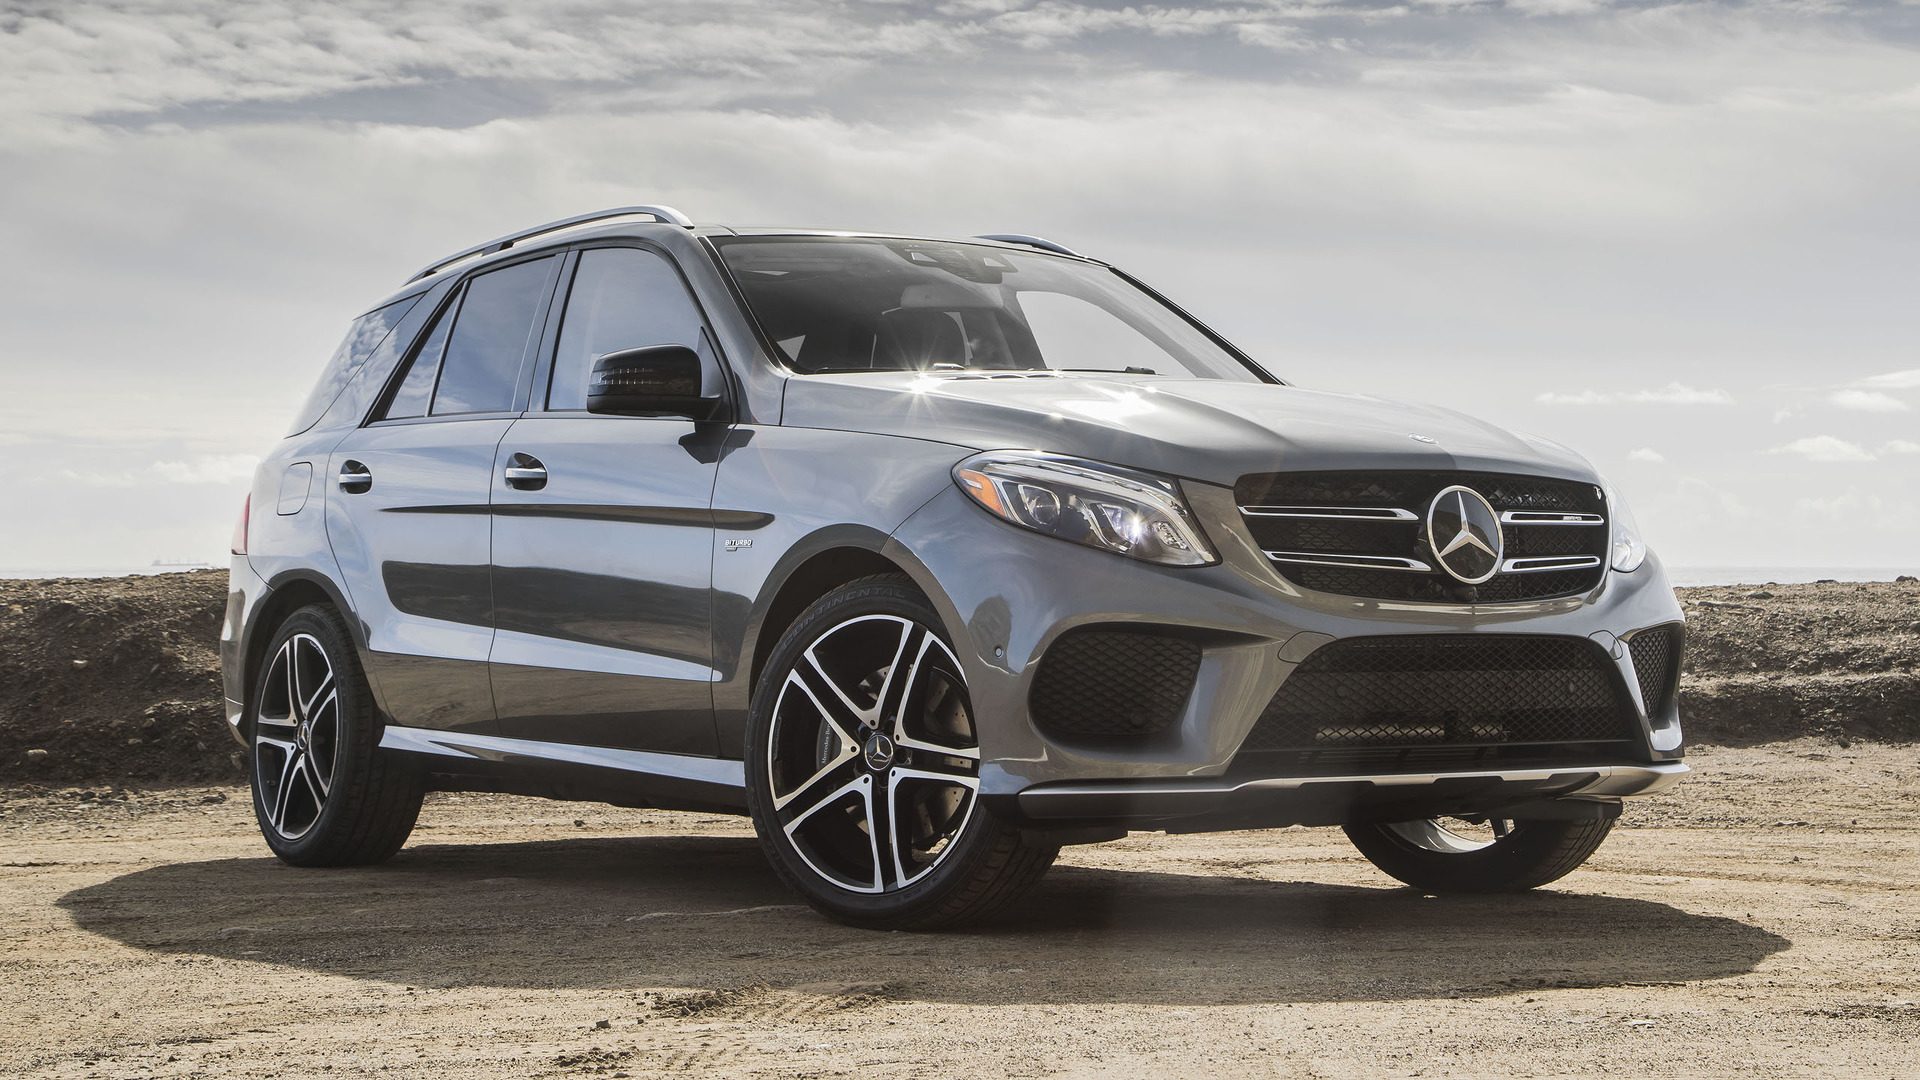 2017 mercedes amg gle43 review a dad bod that can keep up. Black Bedroom Furniture Sets. Home Design Ideas